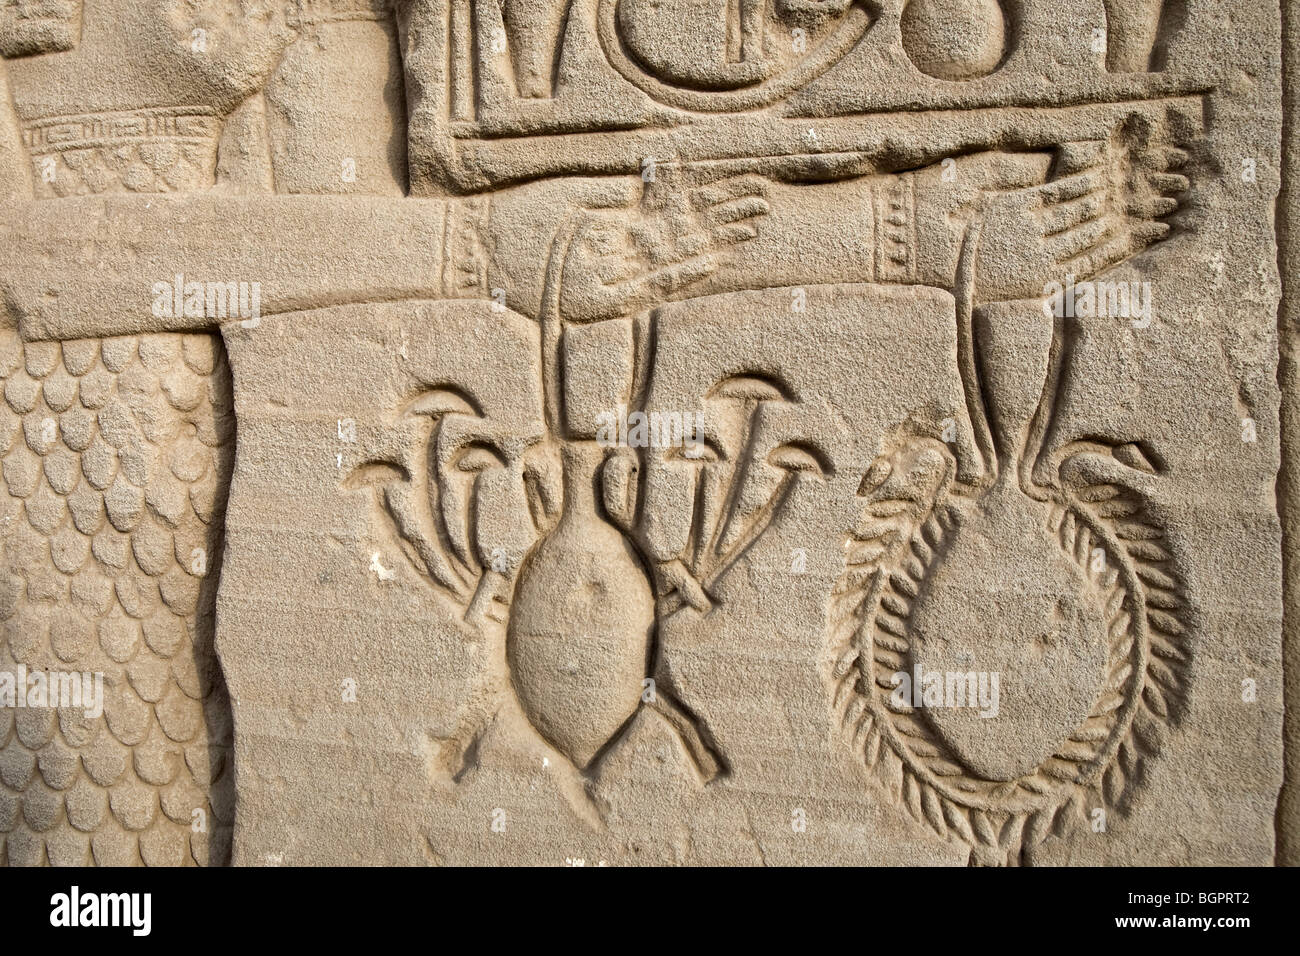 Relief work at the Ptolemaic Temple of Hathor at Dendera, North of Luxor, Nile Valley, Egypt - Stock Image